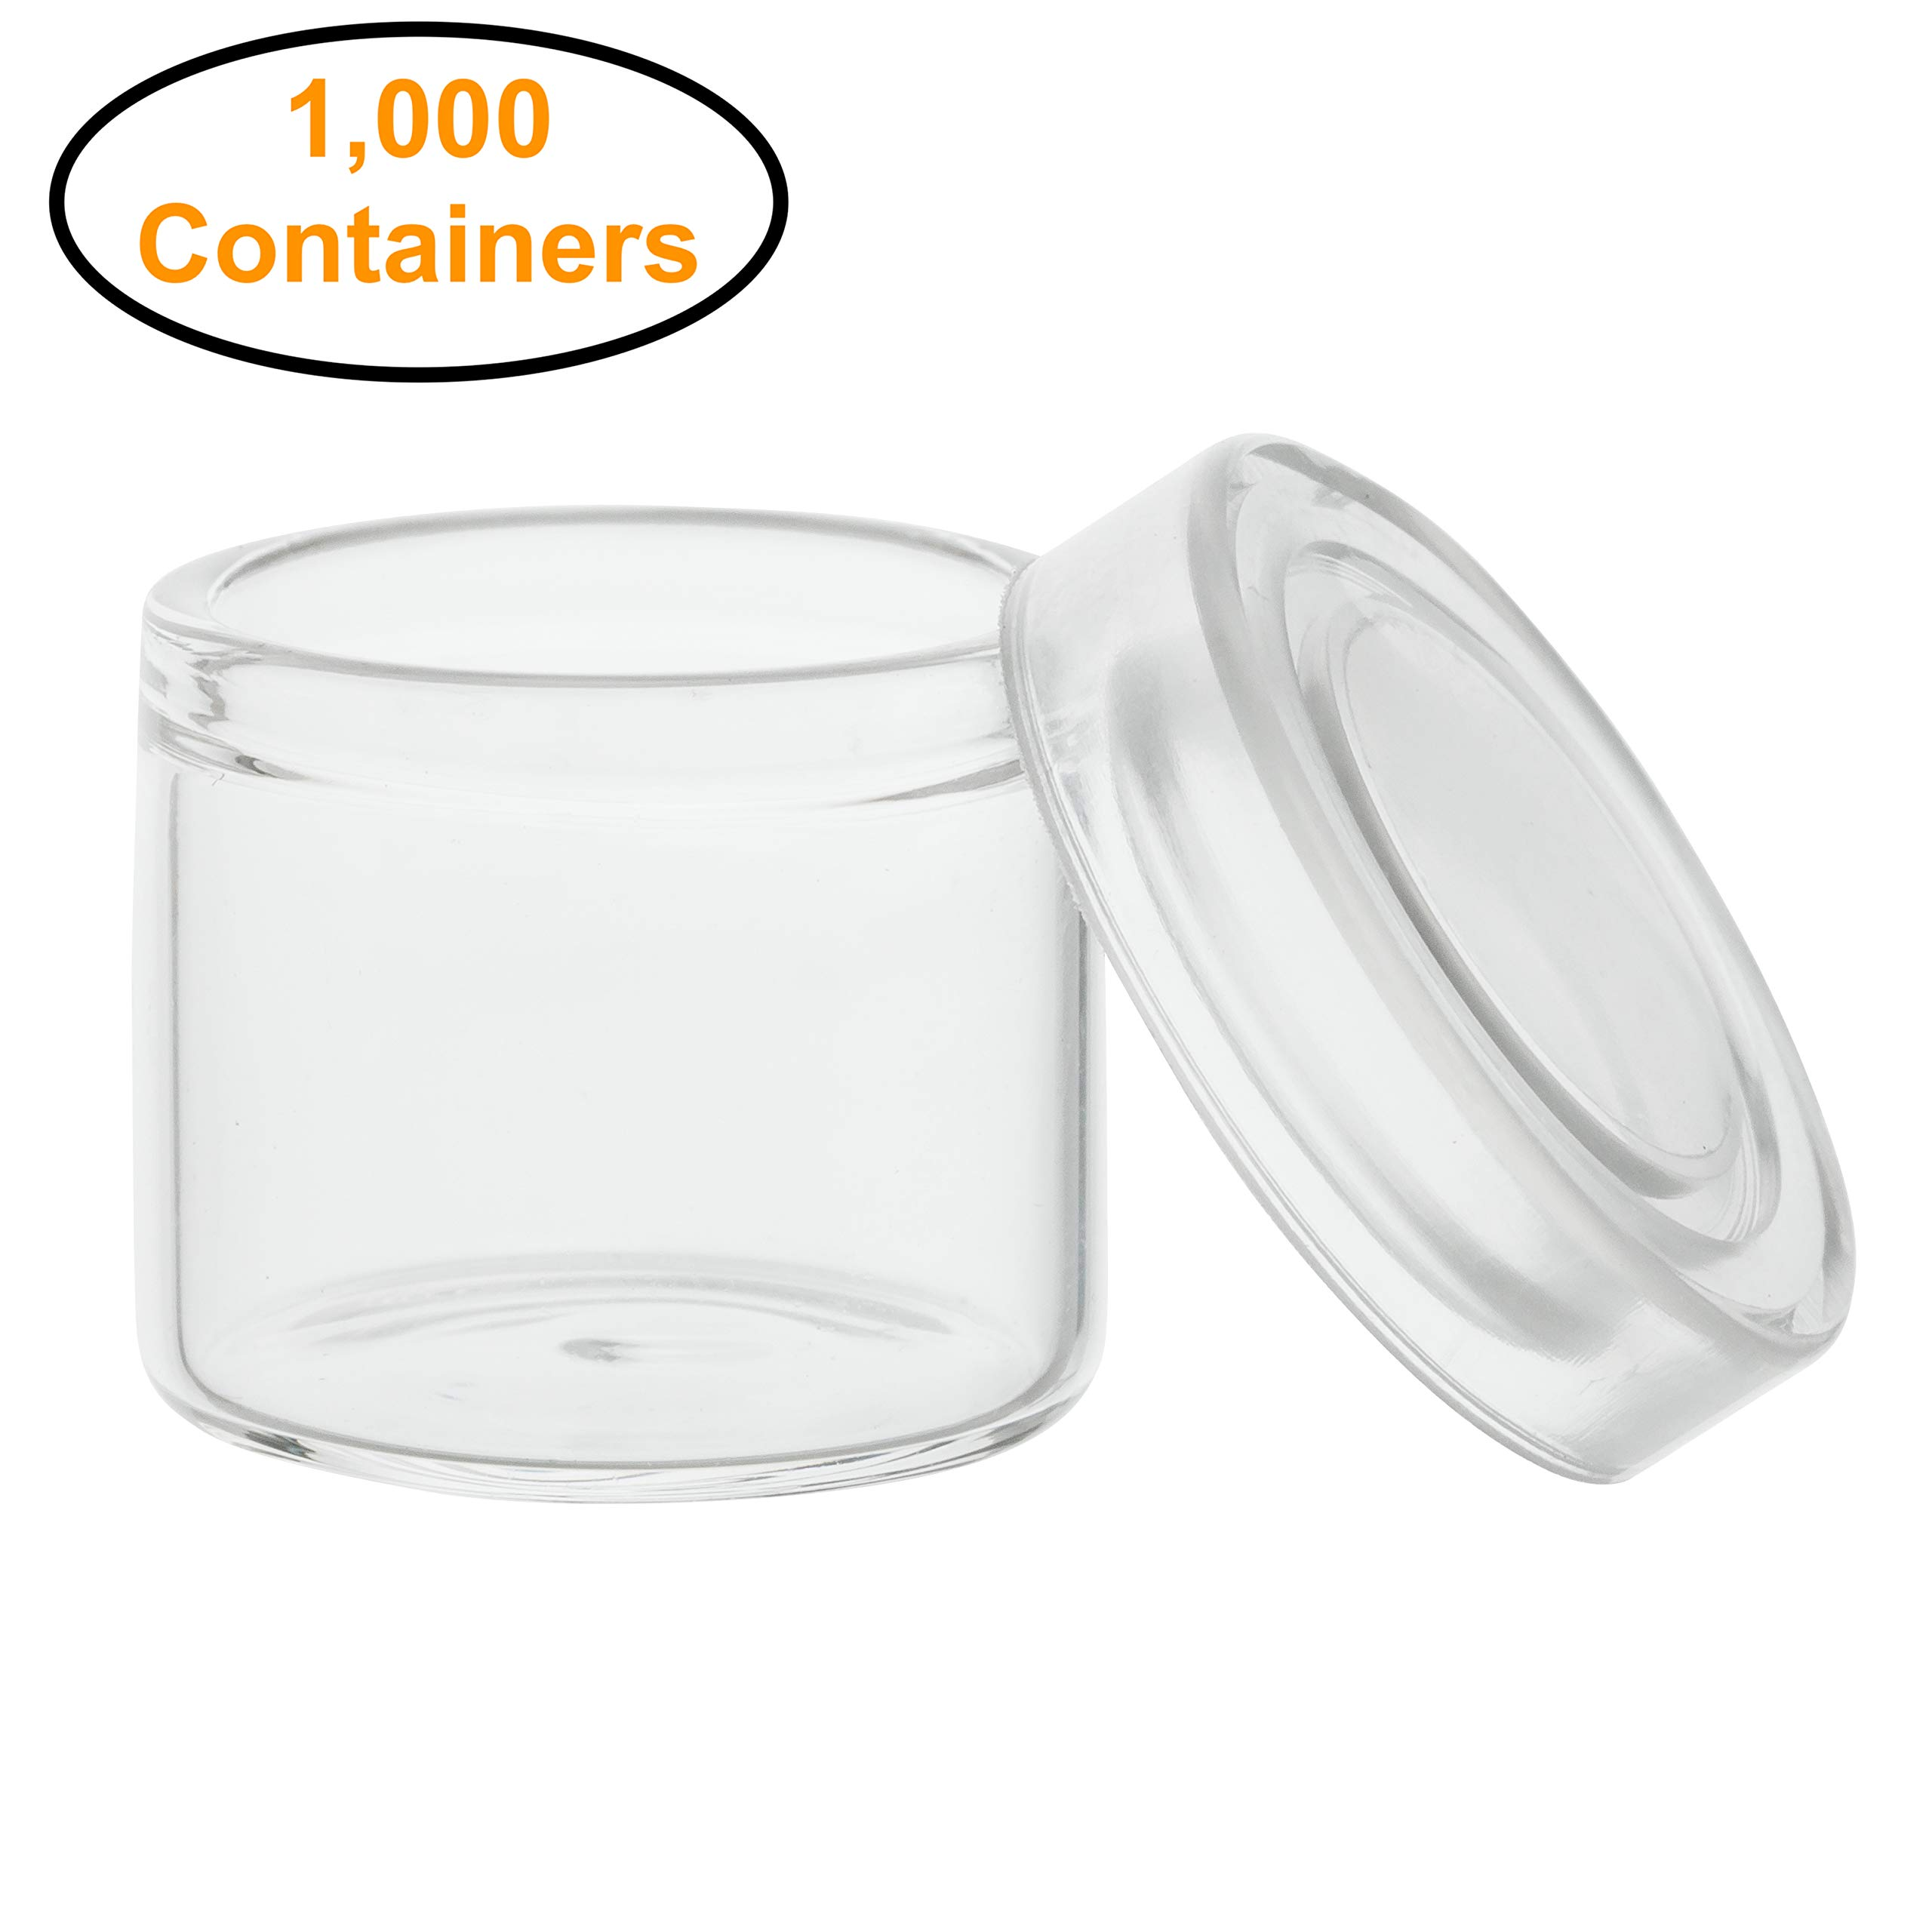 1,000pcs - 6ml Glass Concentrate Containers with Clear Silicone Lids for Oil, Cosmetics, Gram Jars, Dab Jars by BagsandJars